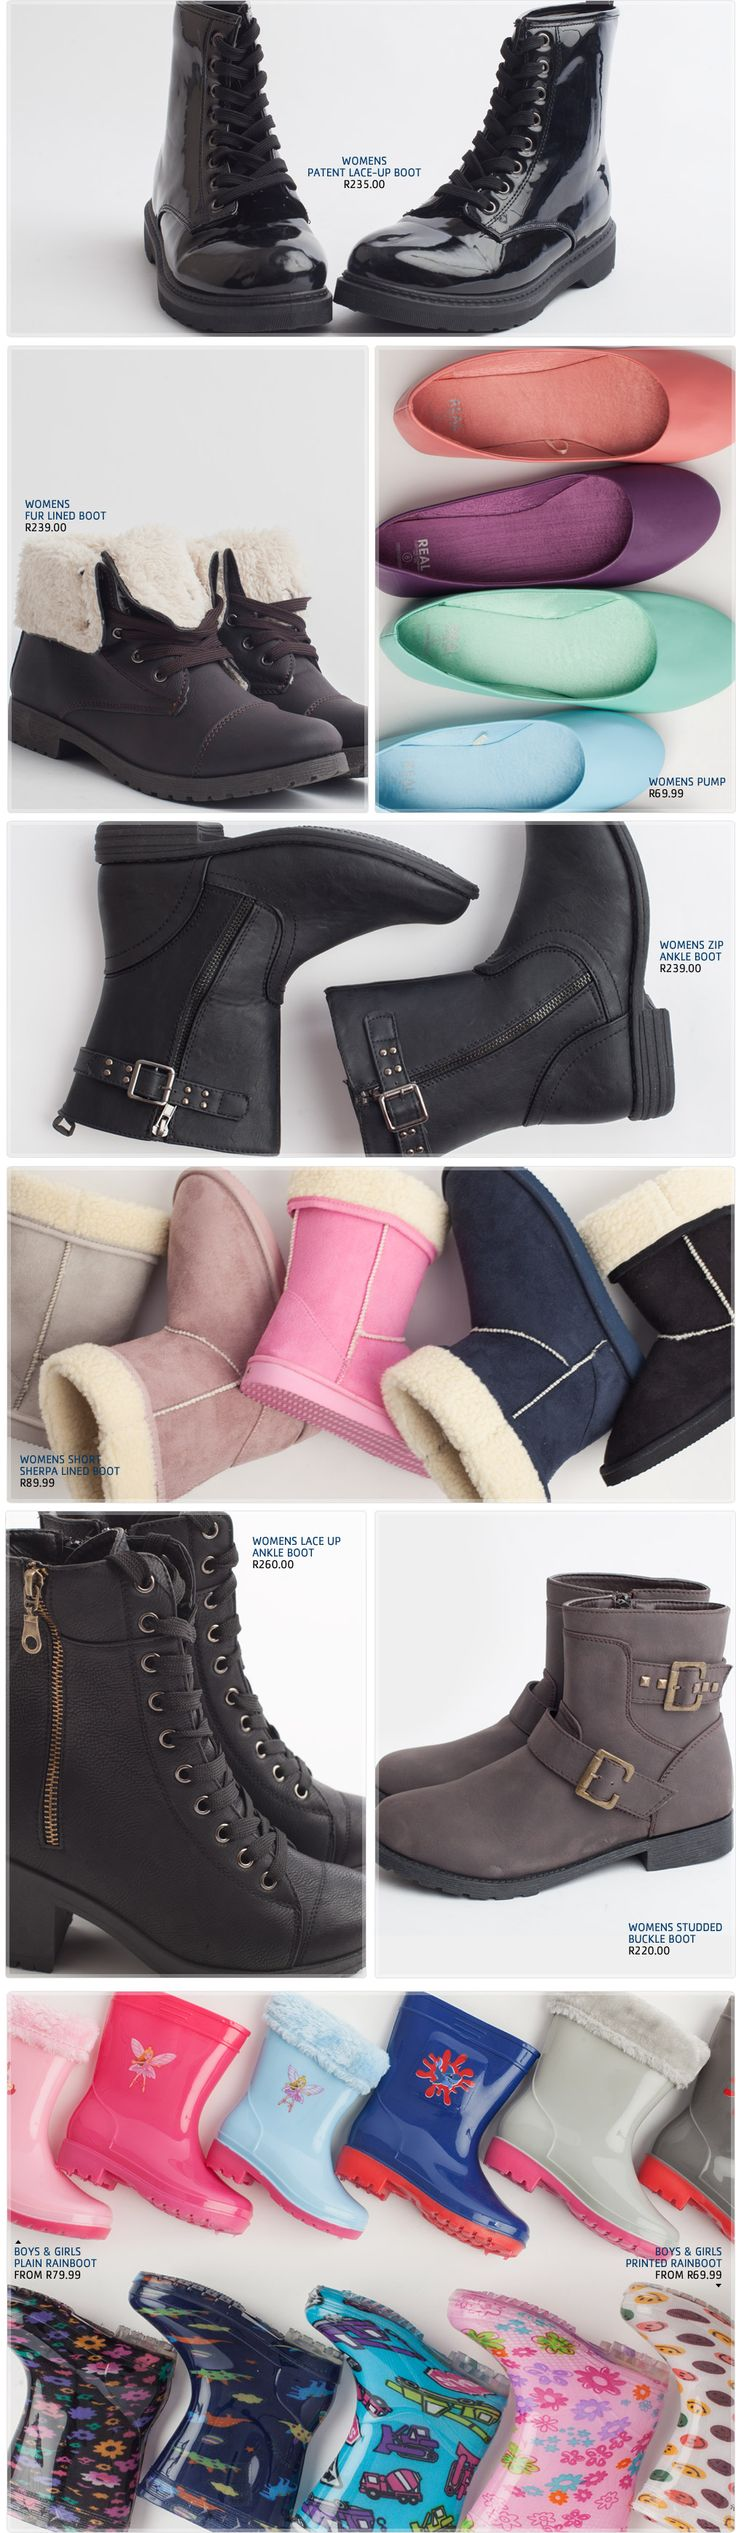 Pick n Pay Clothing Style File | Knitwear - Pick n Pay Warm Footwear for winter and PnP made your life easier by putting the newest and most popular trendy winter styles in this category. From faux fur favorites to leather lace ups, to keep your toes nice and warm.